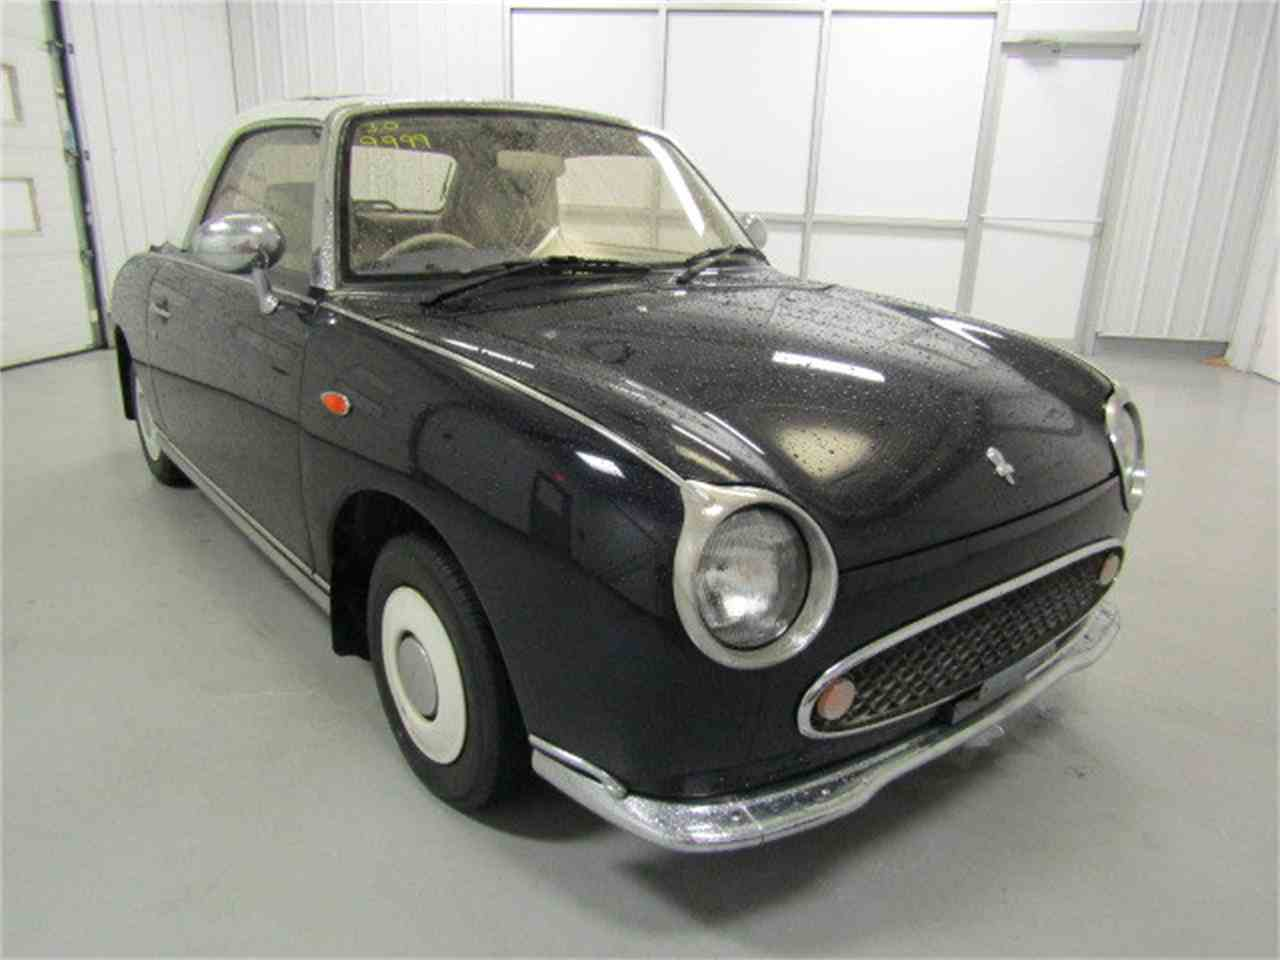 1991 Nissan Figaro for Sale - CC-1003184